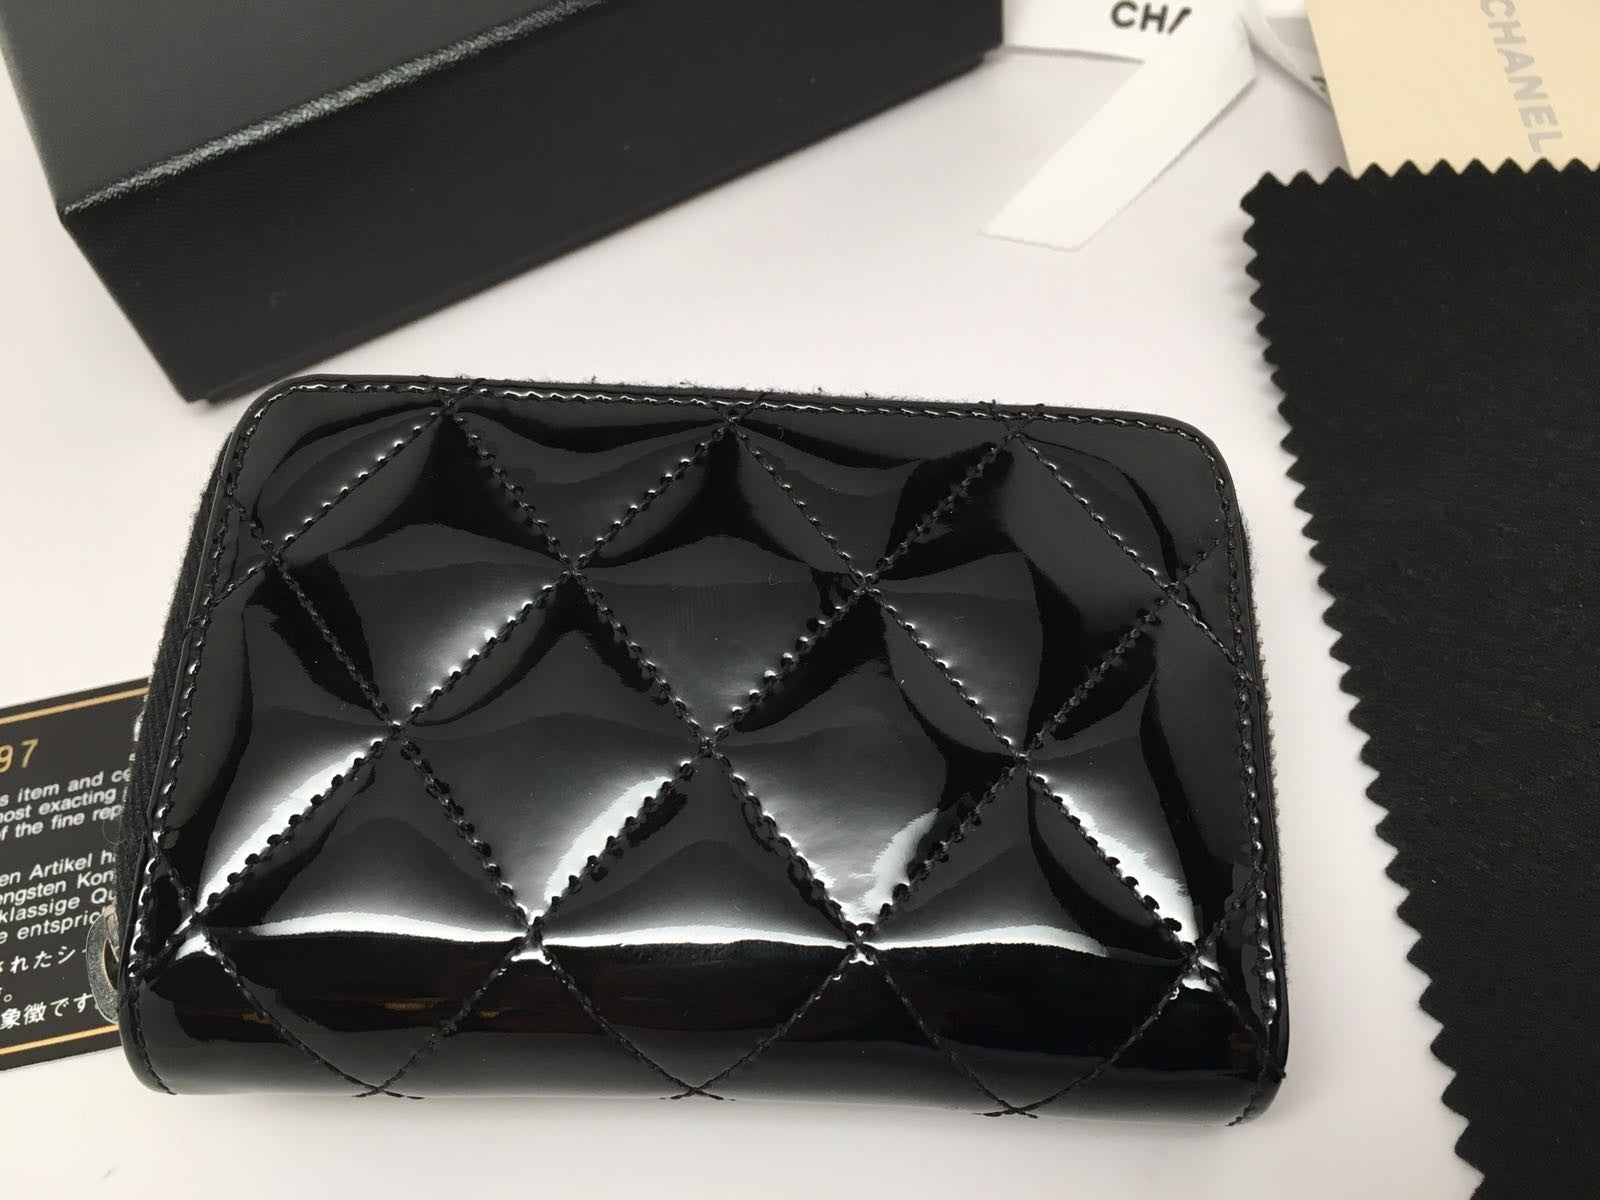 chanel zip coin purse. chanel black patent leather quilted zip around coin purse chanel zip coin purse y